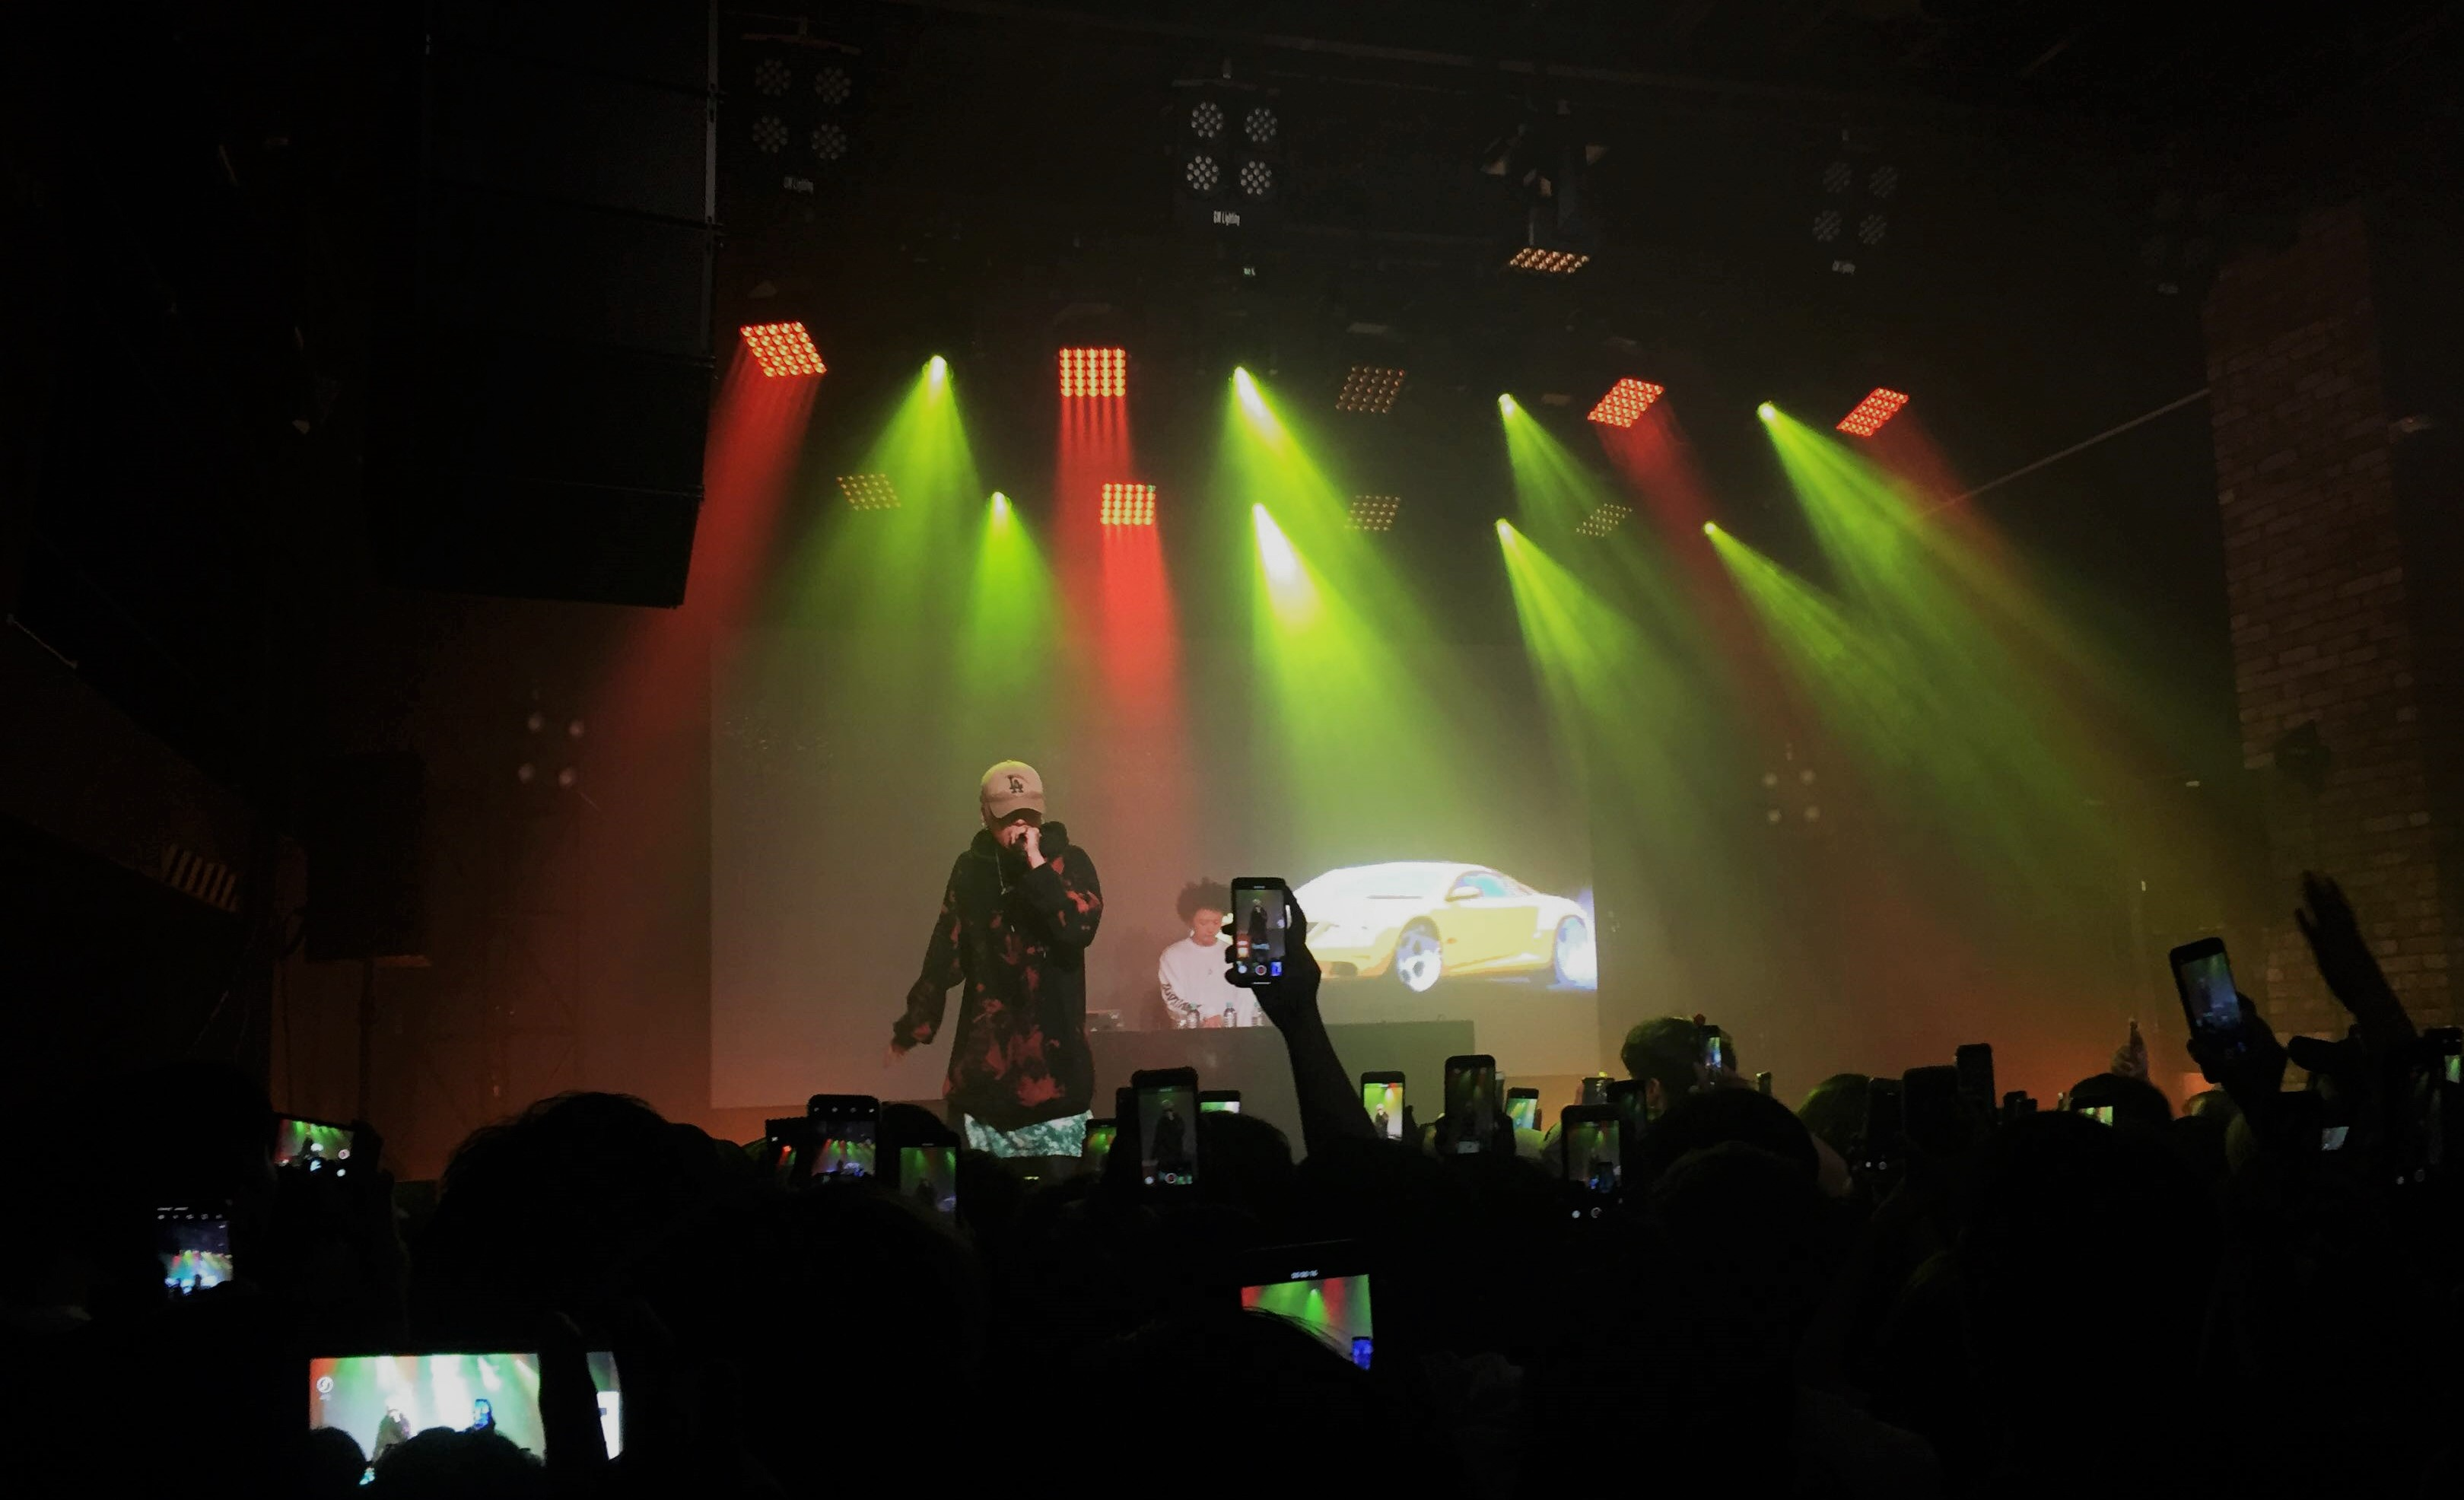 Live Review: Kid Milli – MUV Hall, Seoul (15.06.19)